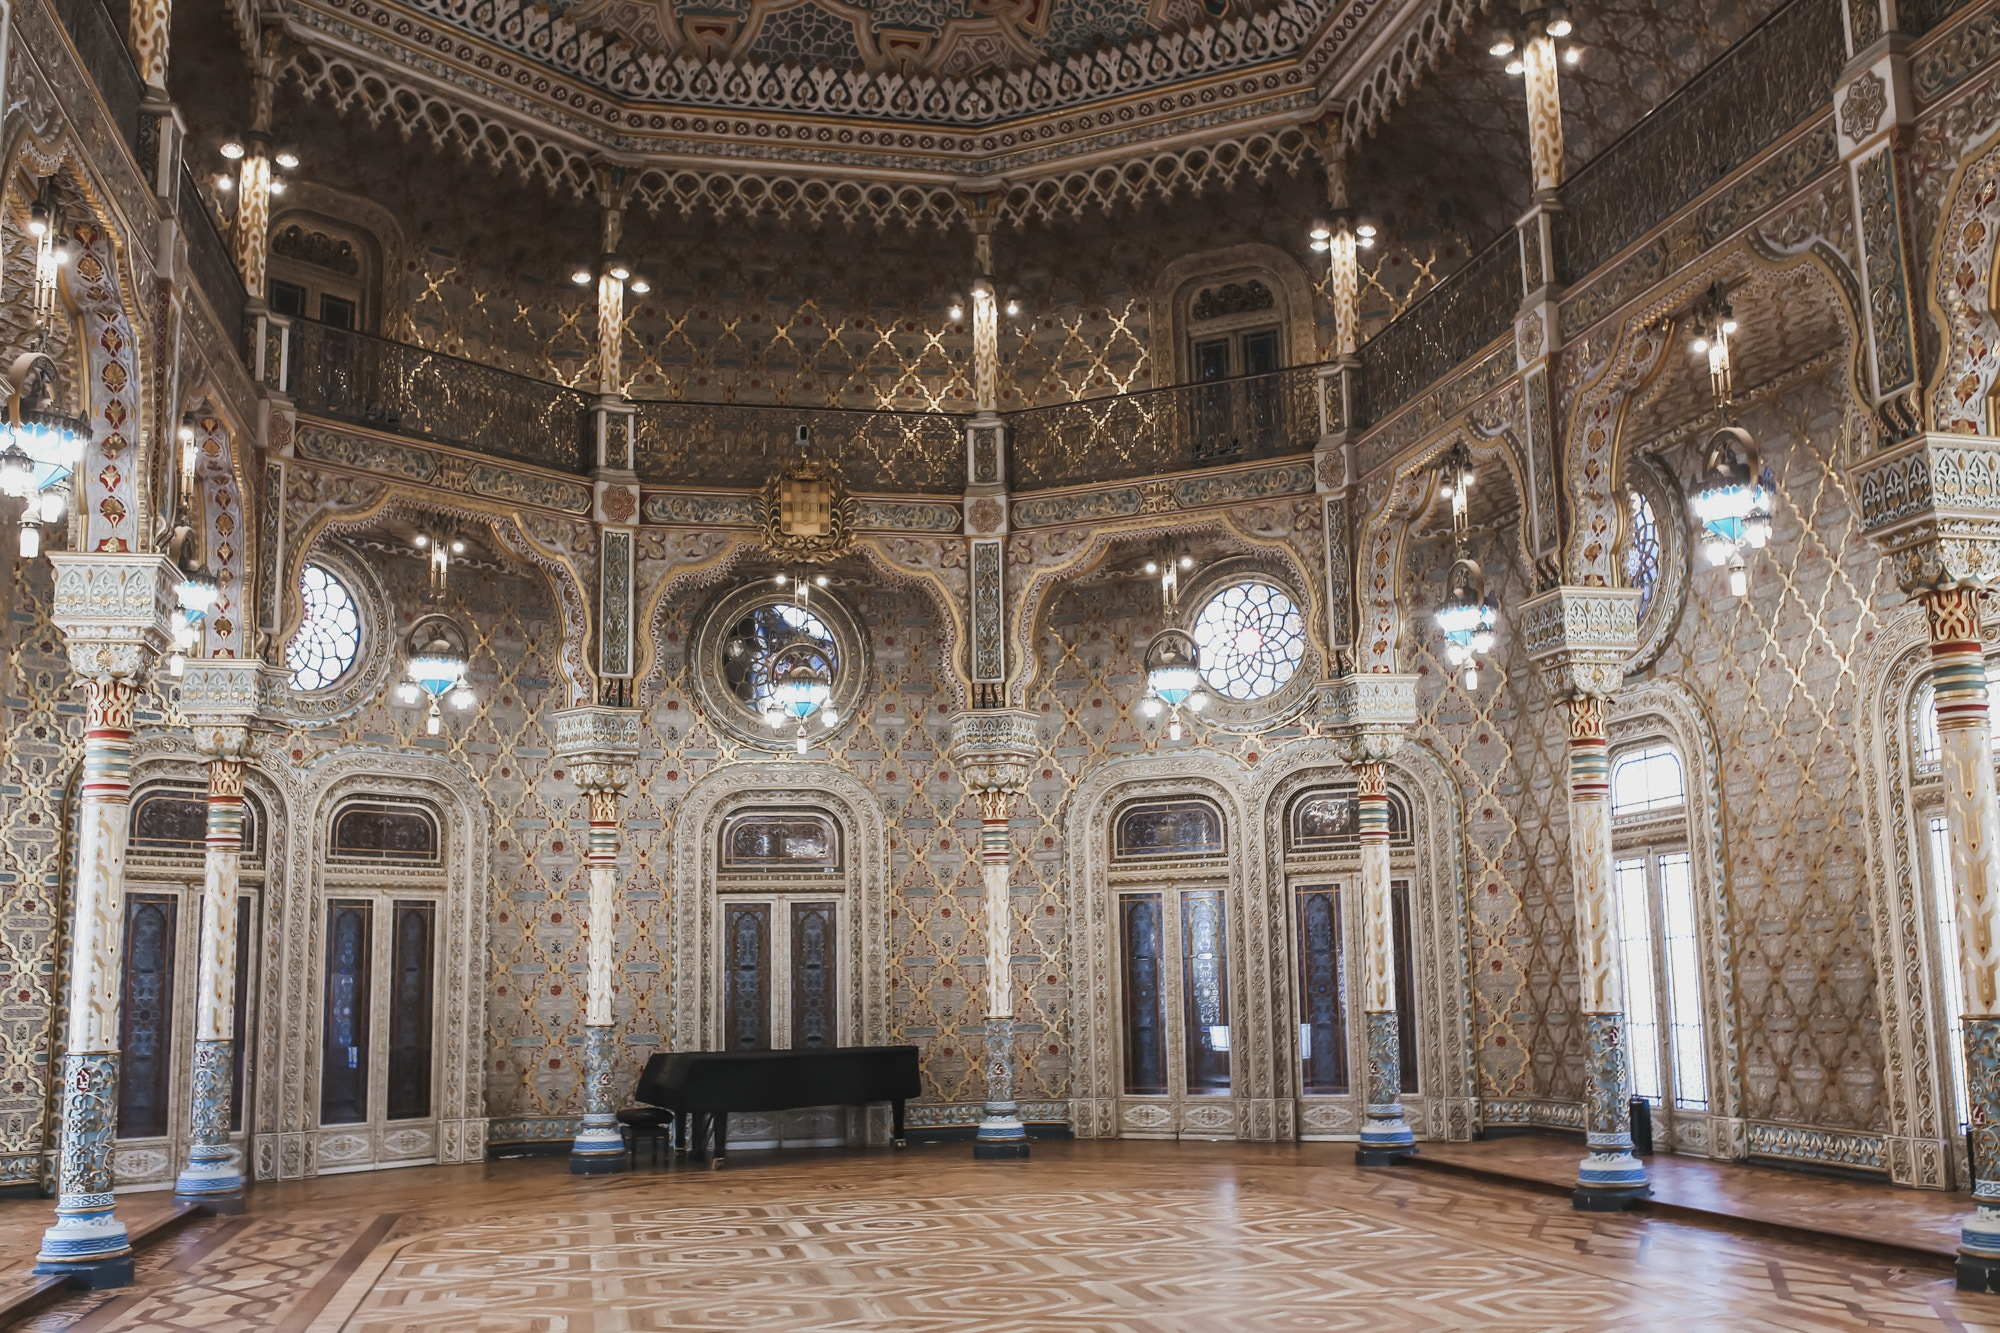 grand arab room in the palacio de bolsa